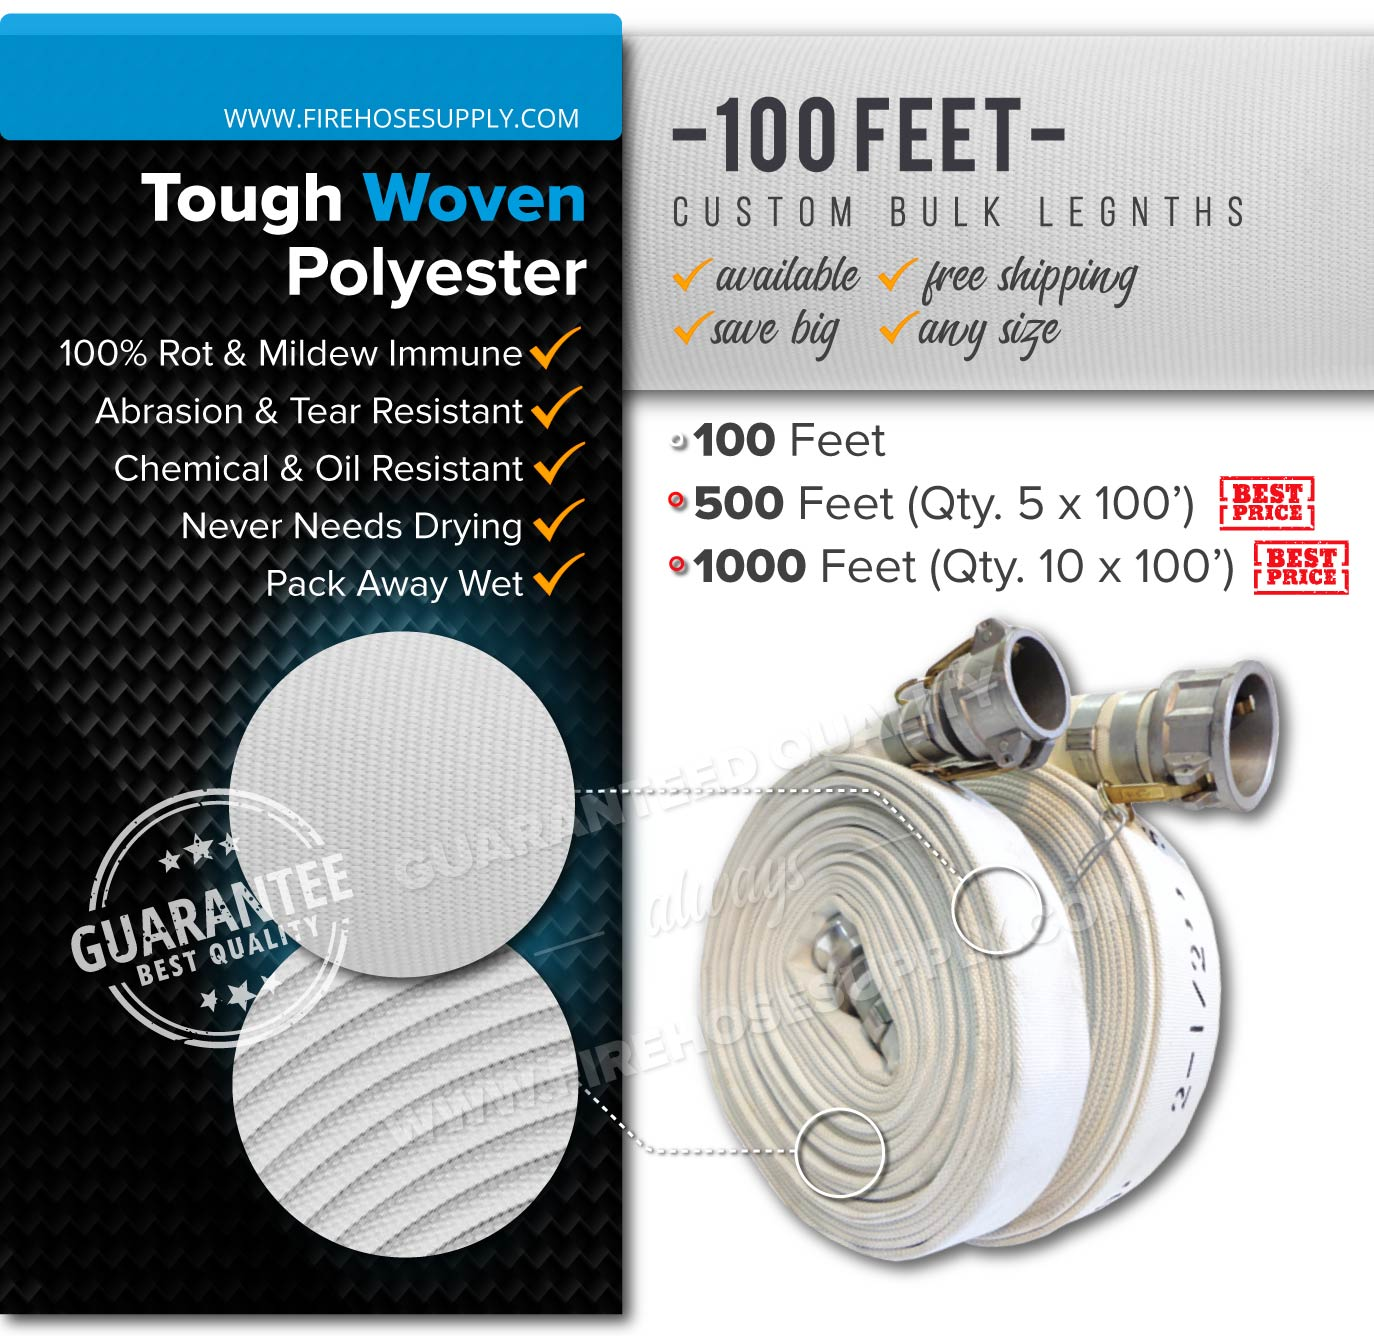 2 inch 100 feet camlock discharge quick connect hose polyester bulk discount 1000 feet